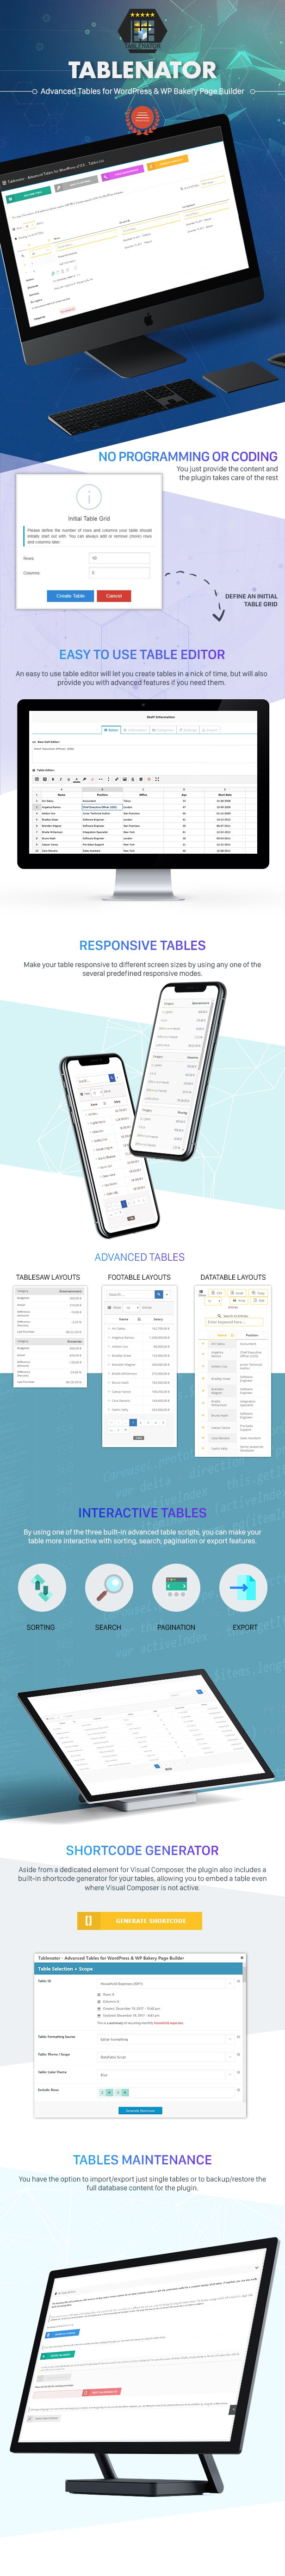 tablenator2 - Tablenator - Advanced Tables for WordPress & WP Bakery Page Builder